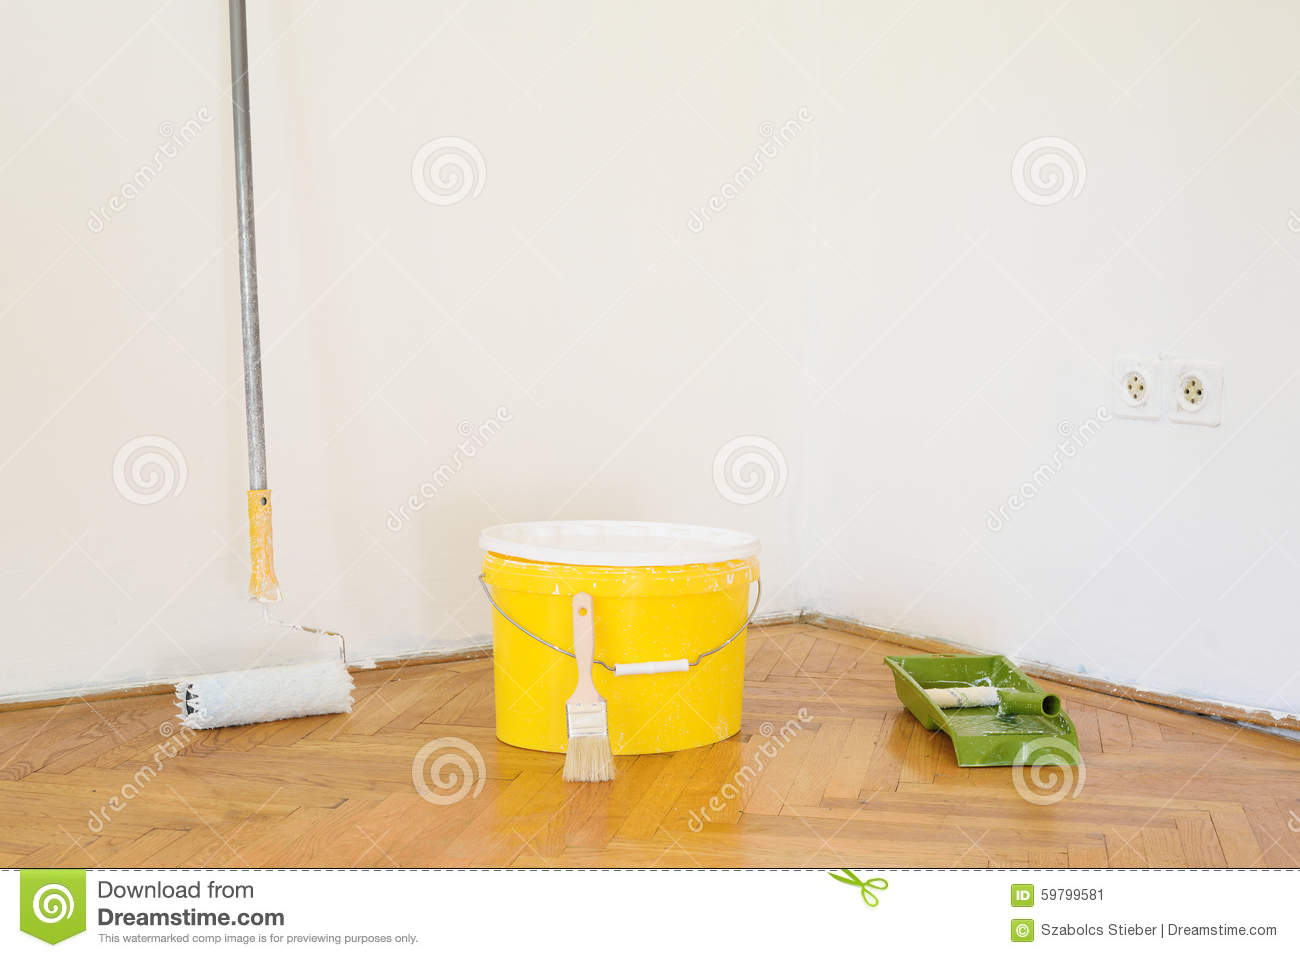 Home Decorating Concept Stock Photo Image 59799581